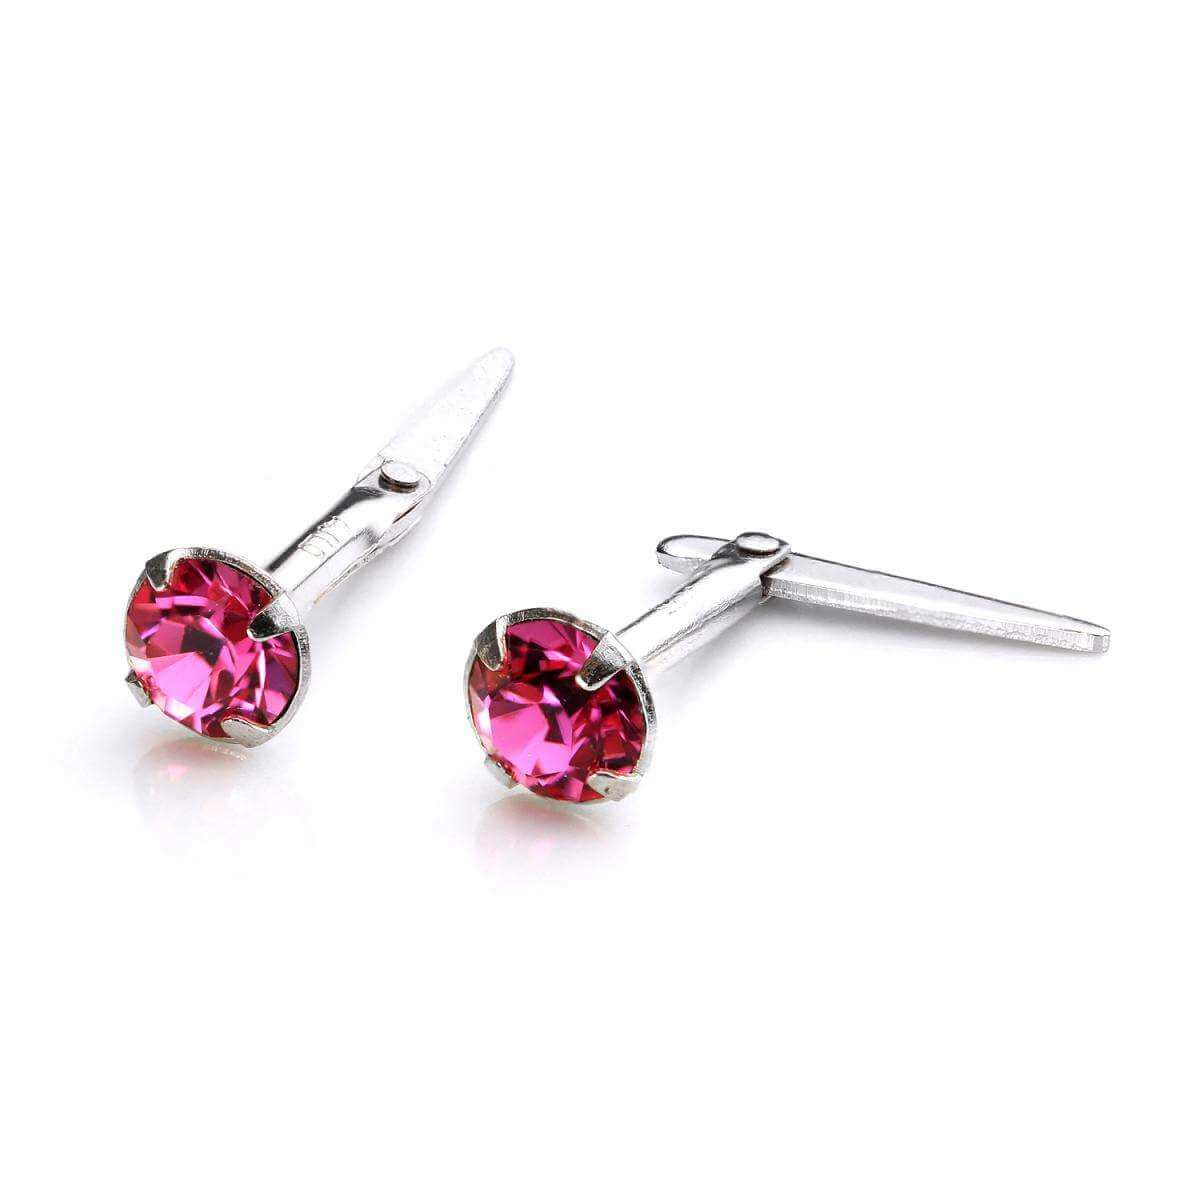 Sterling Silver Andralok Stud Earrings with 3mm Rose Crystal